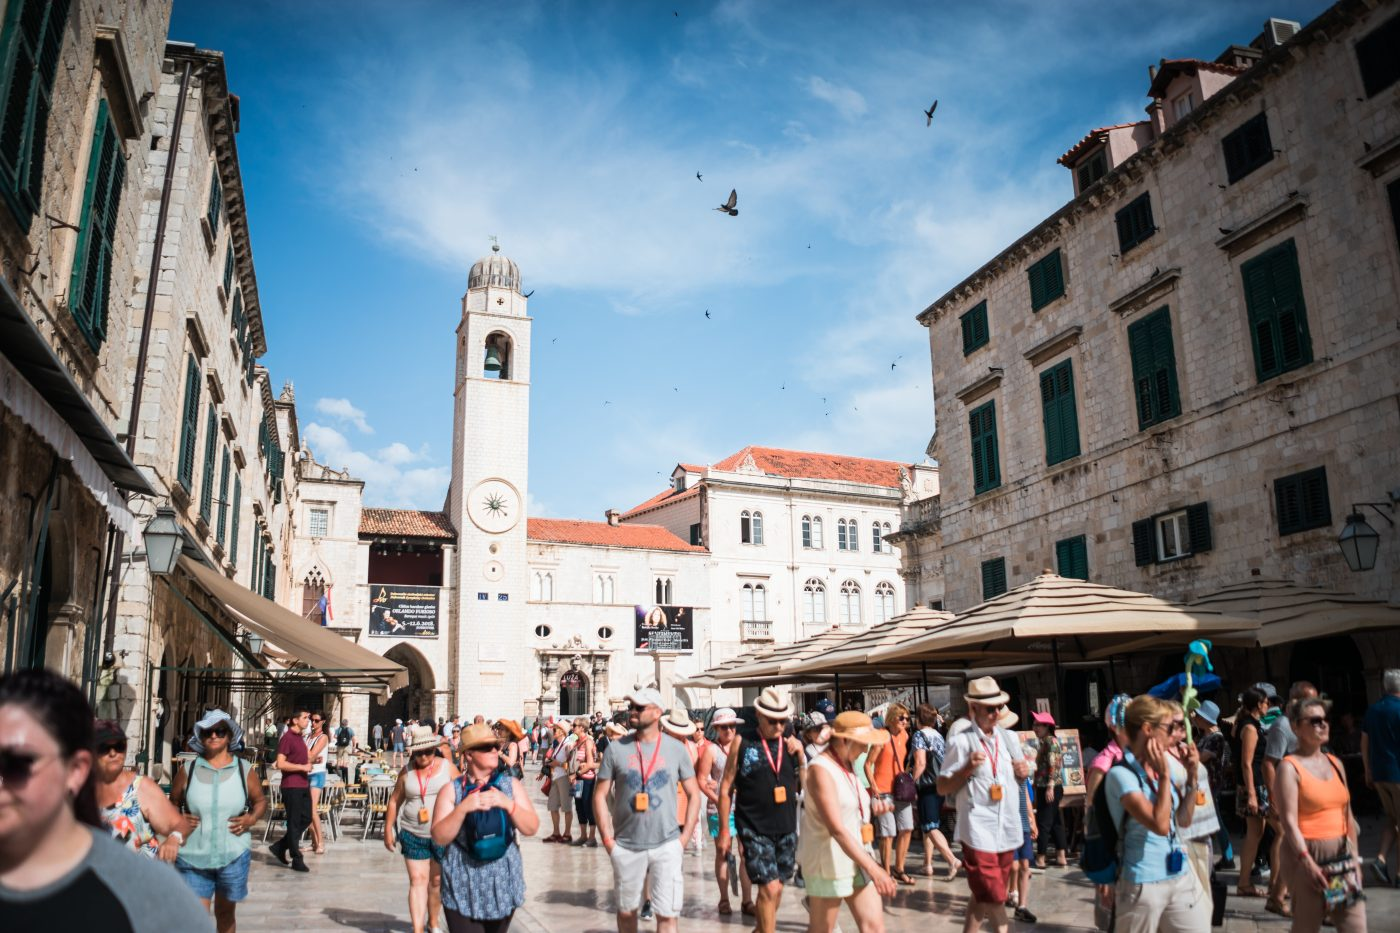 Things to do in Dubrovnik: walking through Dubrovnik market